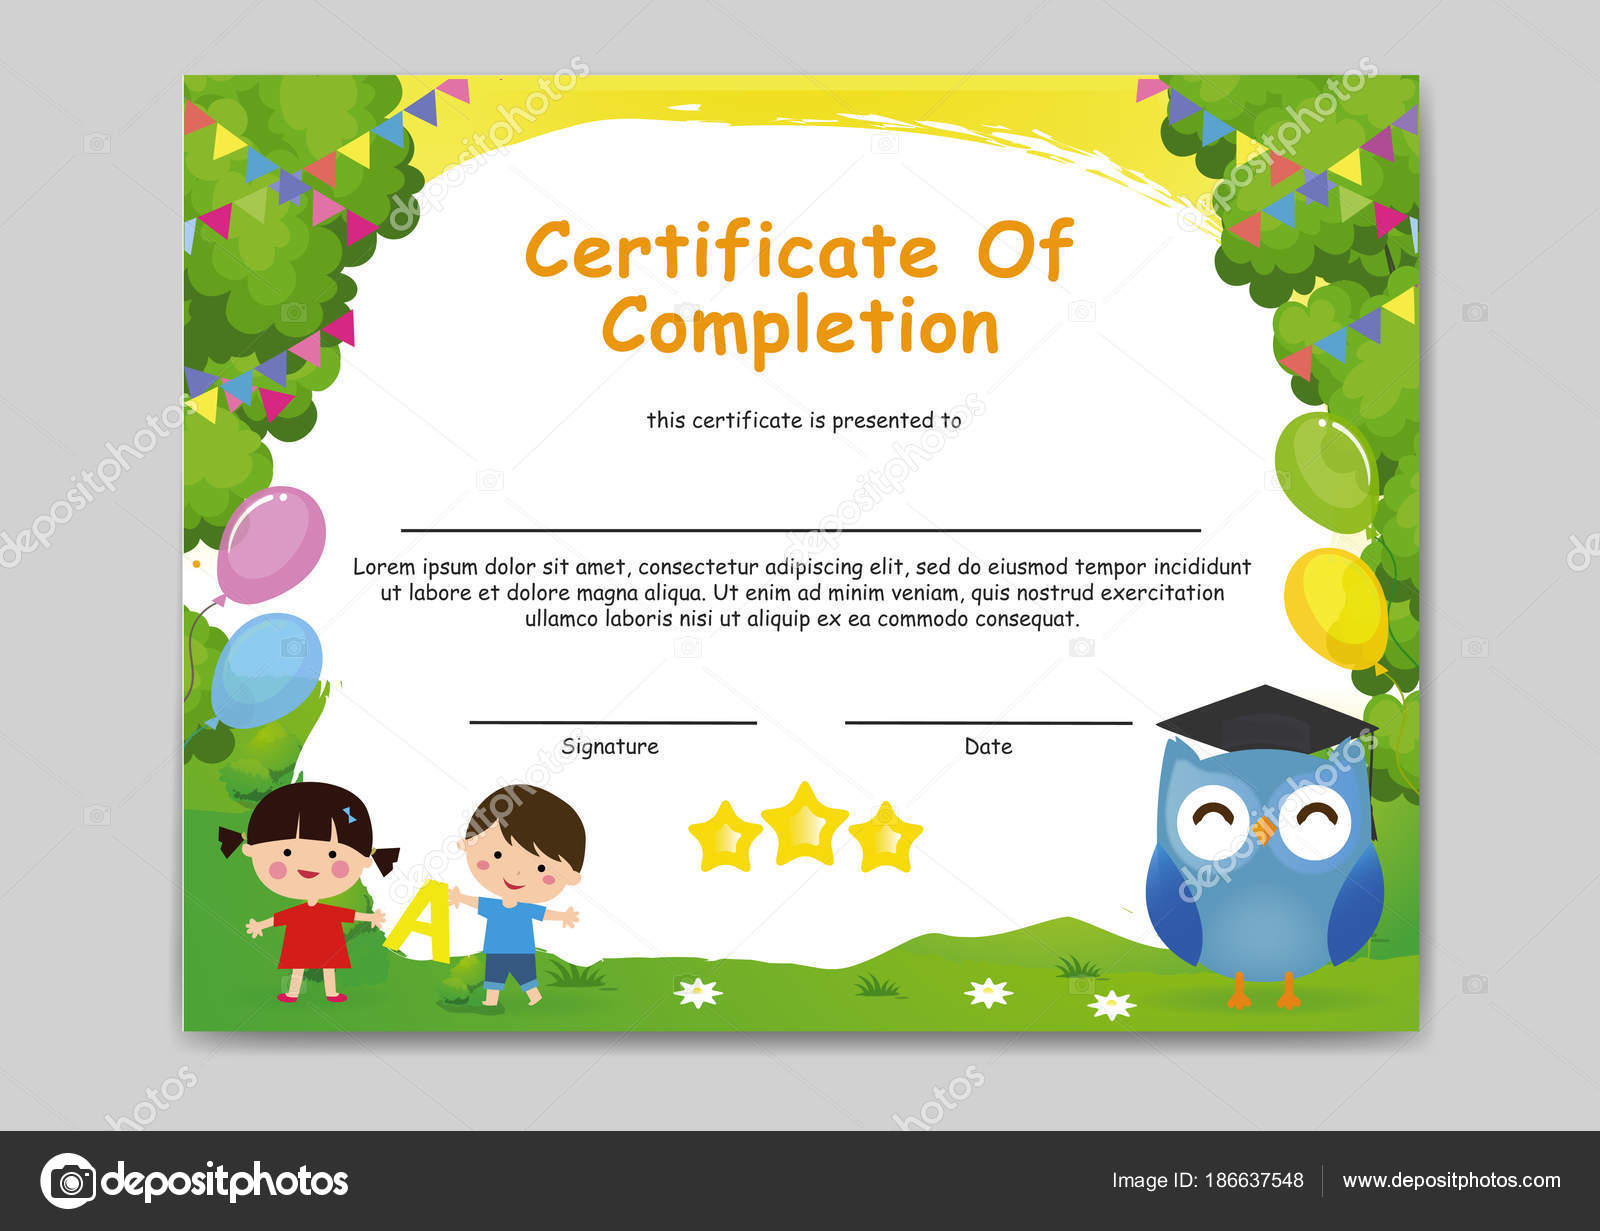 colourful cheerful kindergarten certificate completion illustartion